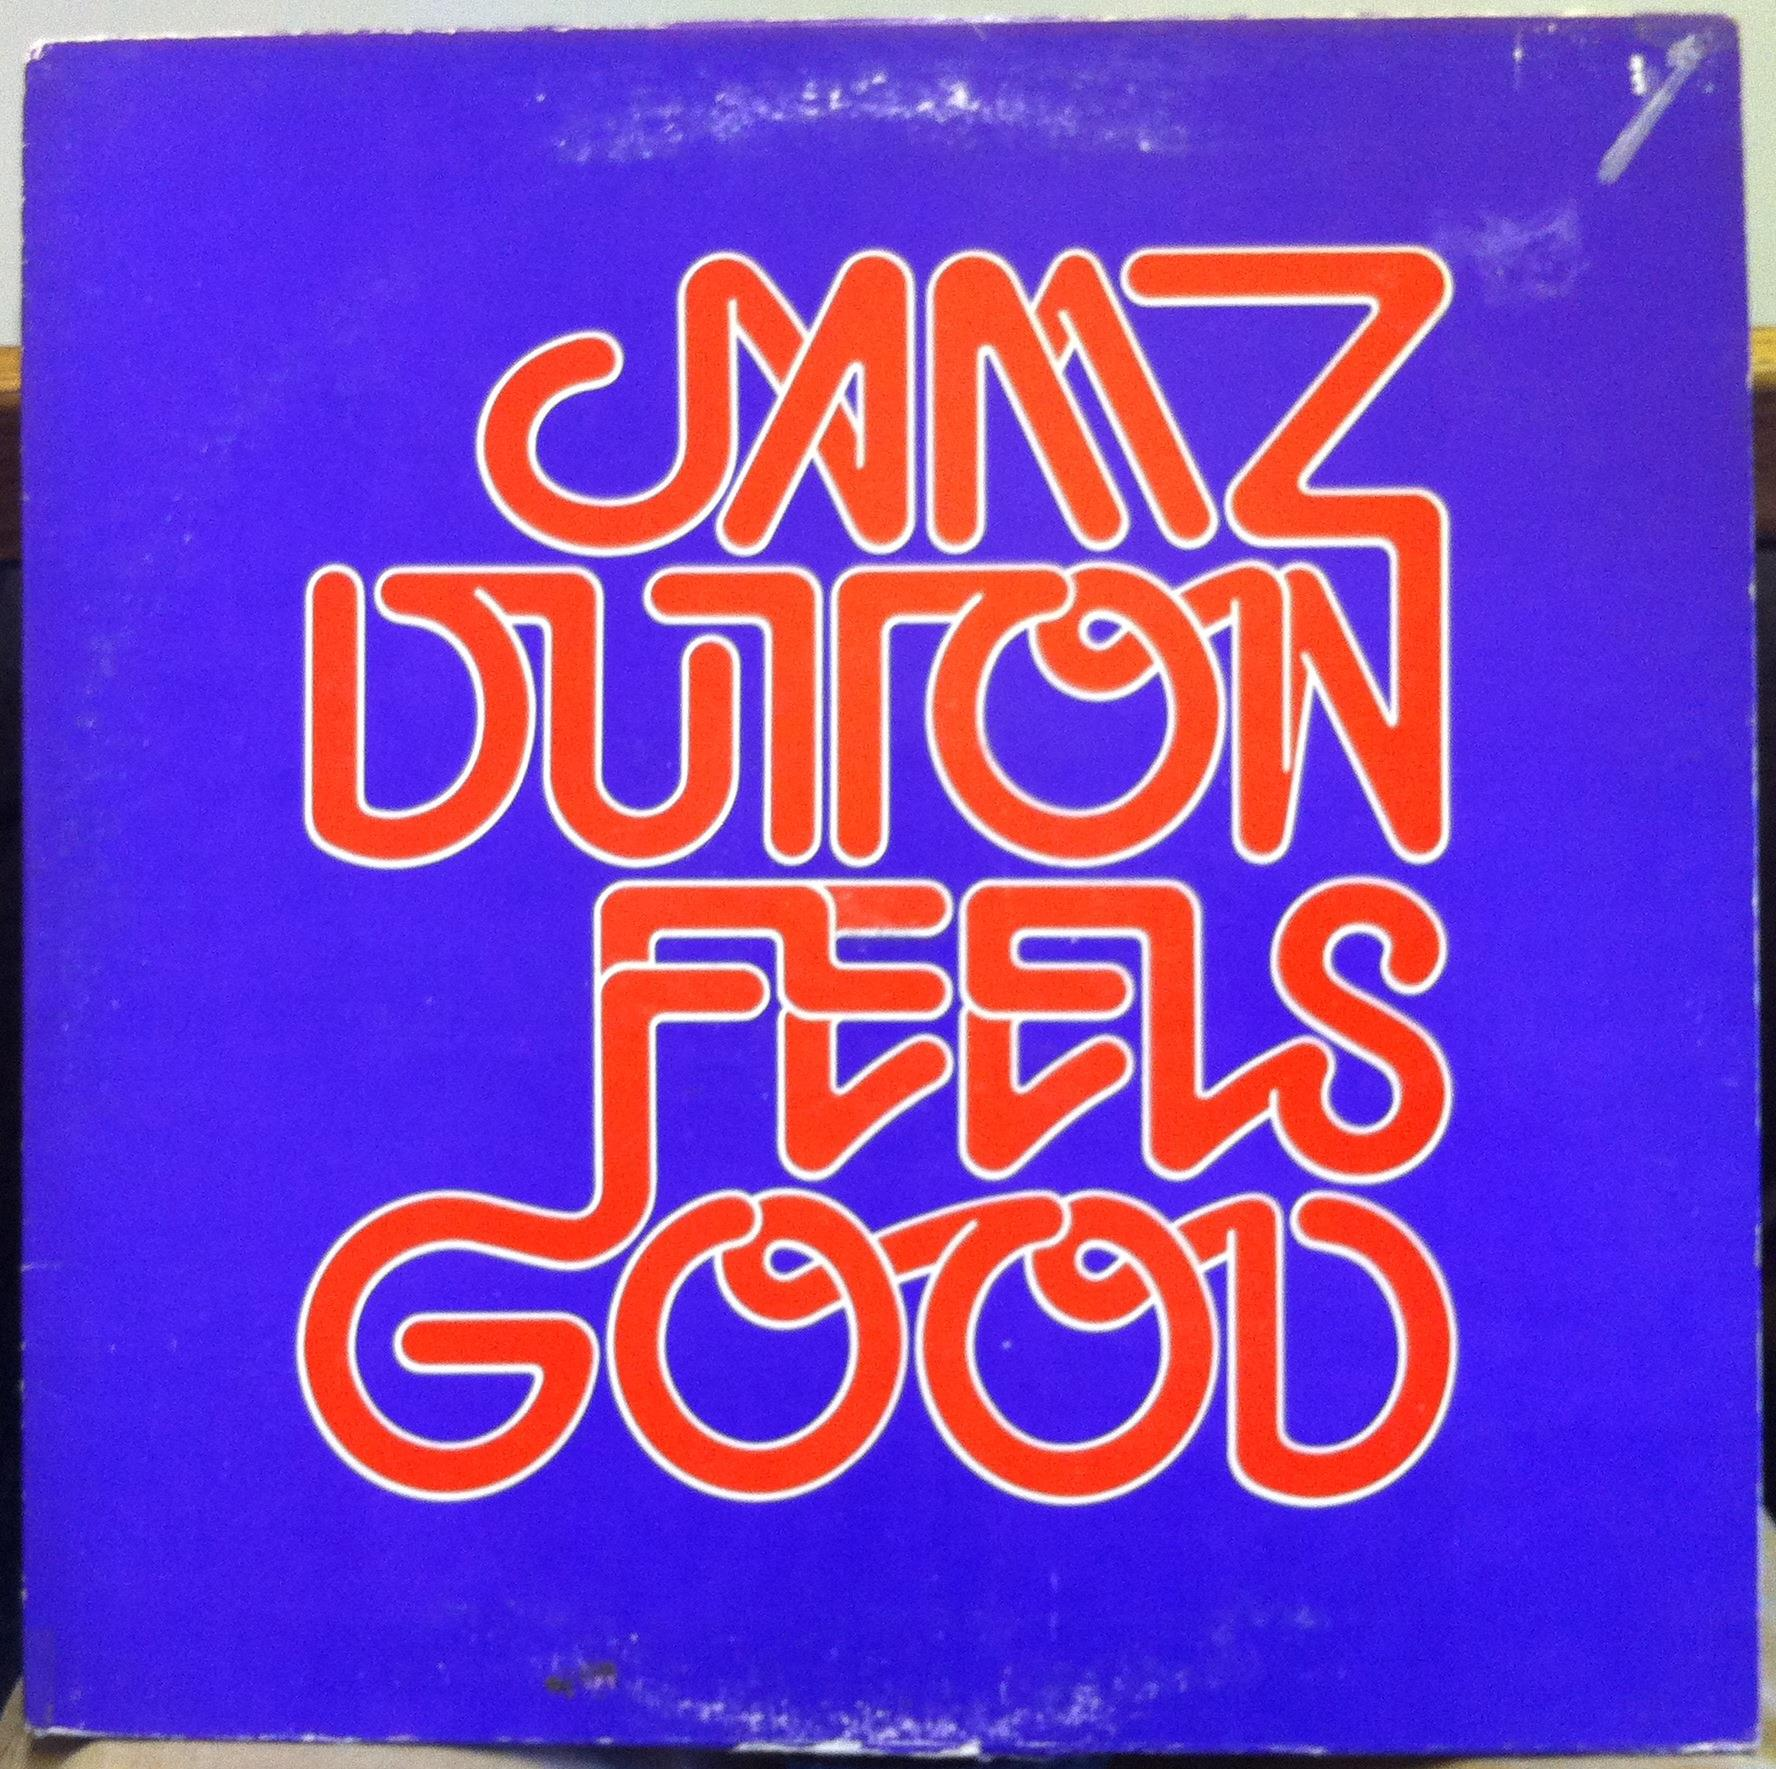 JAMZ DUTTON BAND feels good LP VG+ Private Chicago IL jazz Funk